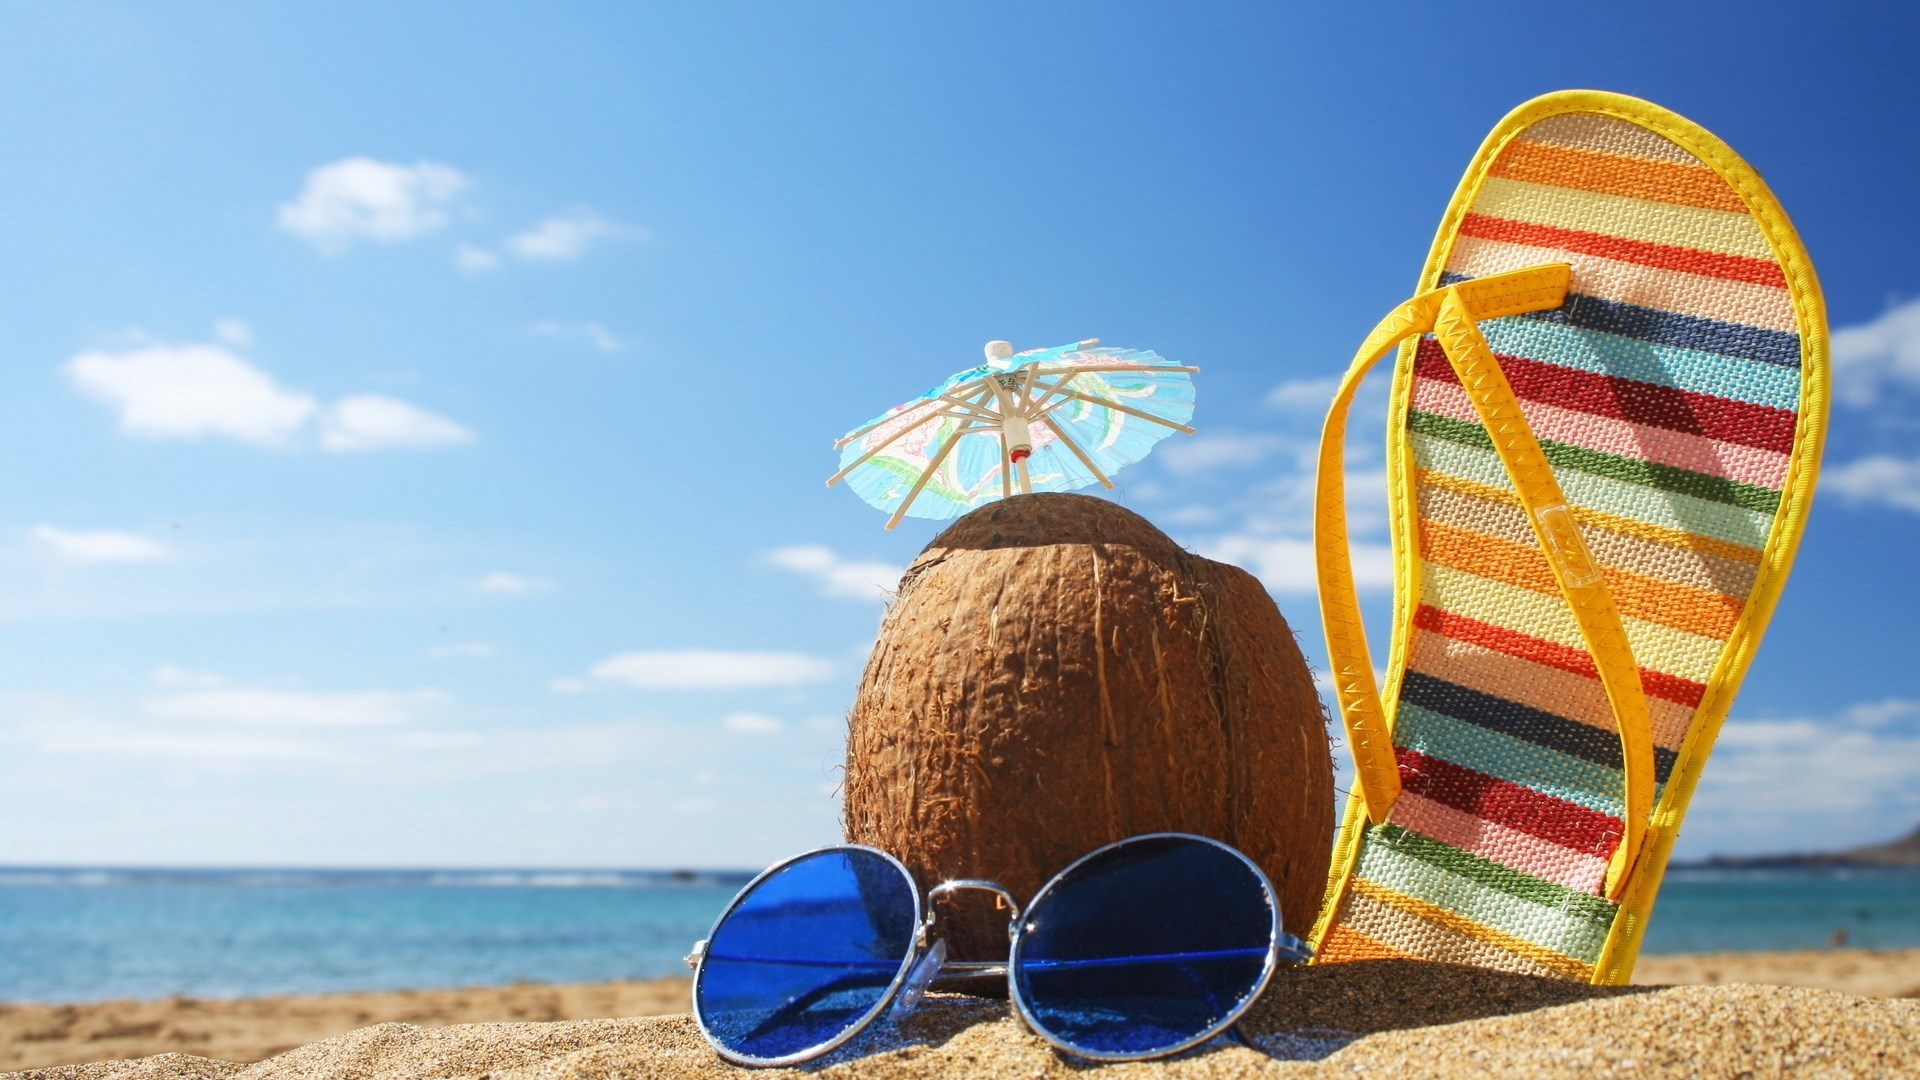 xl-summer-holiday-view-large-beach-coconut-1920x1080-wallpaper-wpc90010457